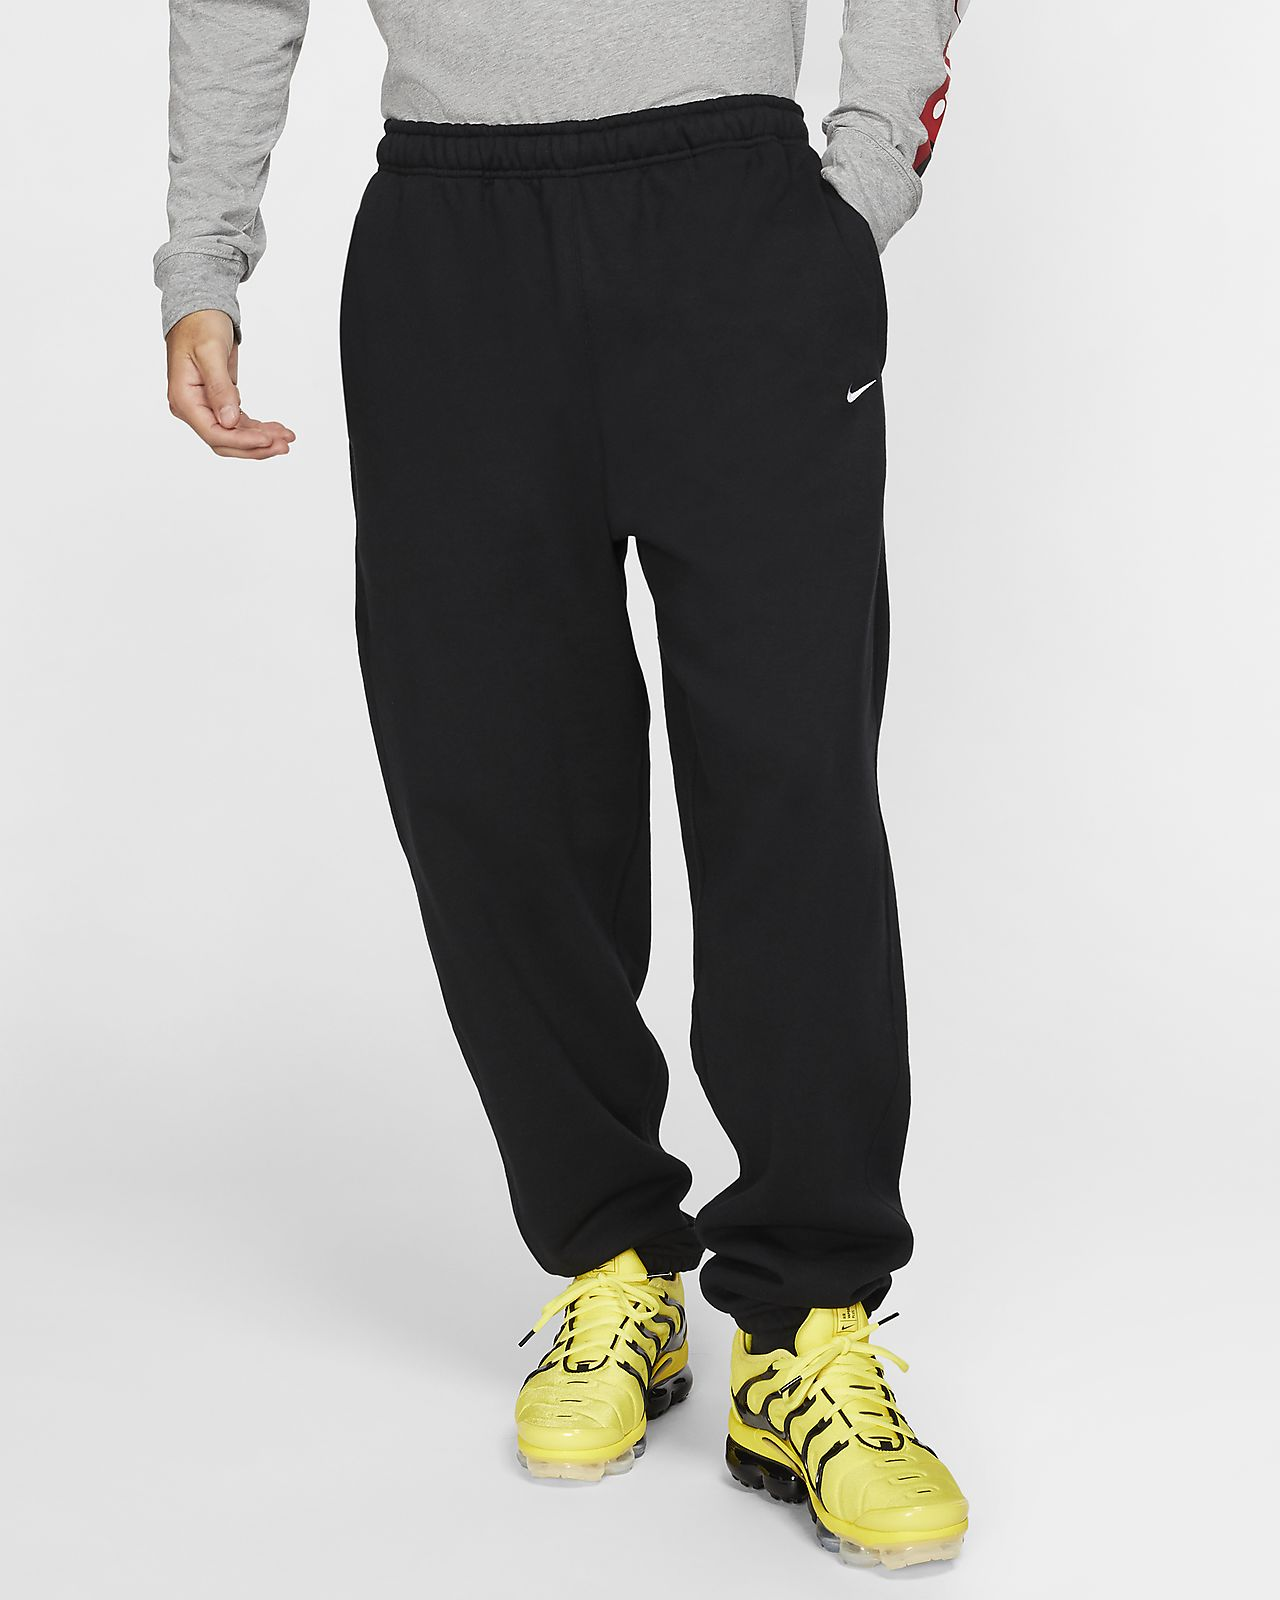 Nike Men's Trousers